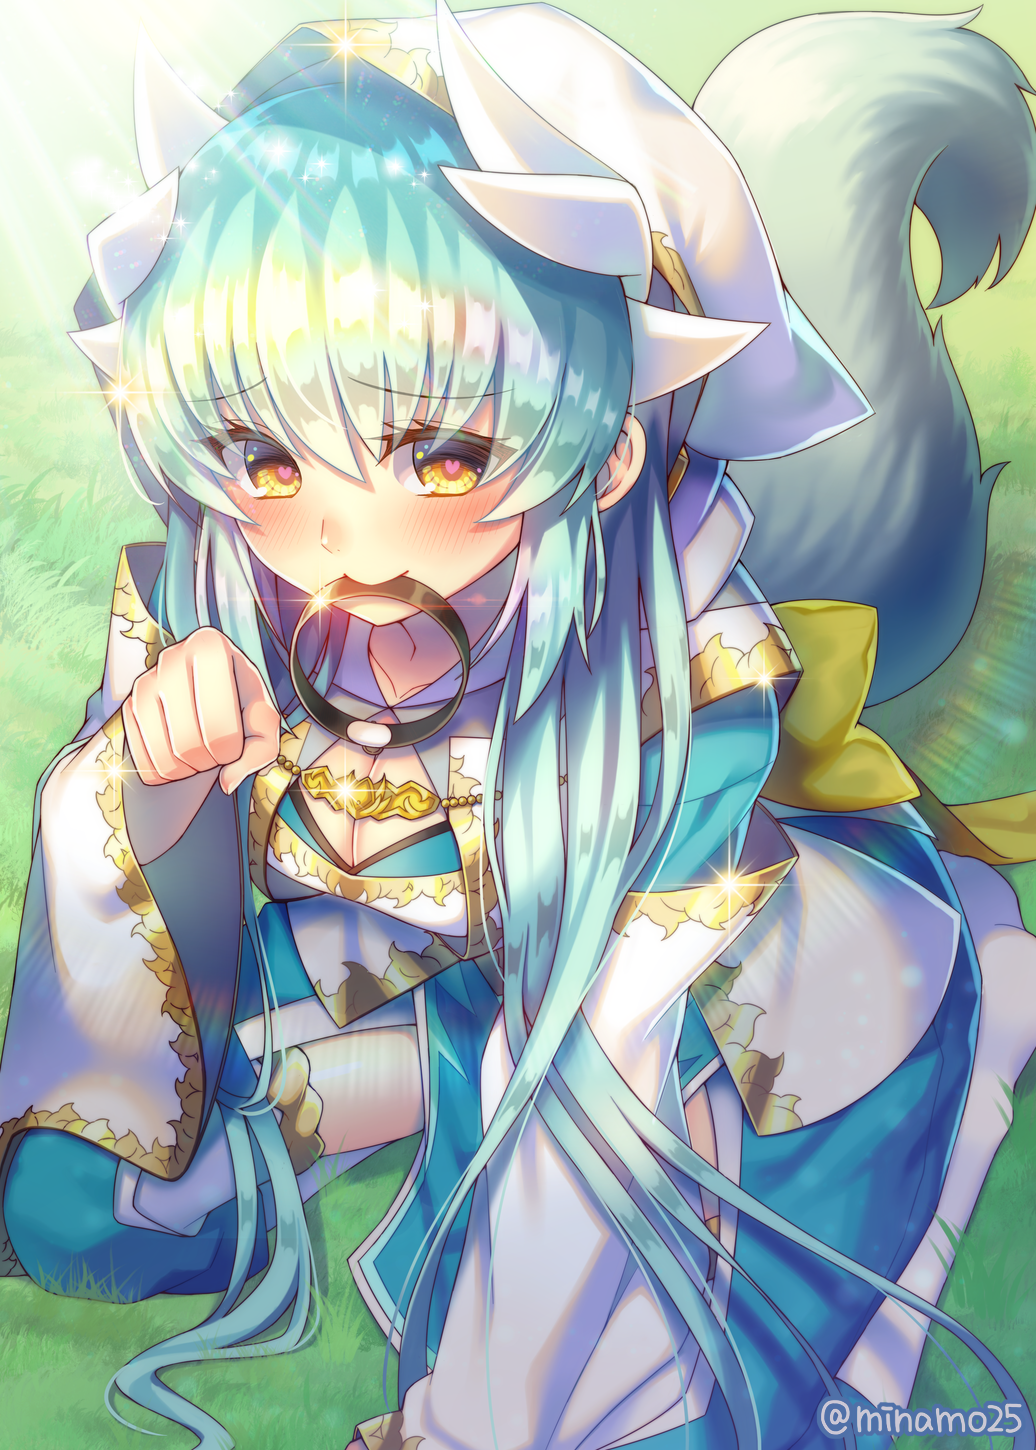 1girl aqua_hair bangs blush breasts cleavage cleavage_cutout commentary_request detached_sleeves dog_tail eyebrows_visible_through_hair fate/grand_order fate_(series) heart heart-shaped_pupils highres hood hoodie japanese_clothes kiyohime_(fate/grand_order) kneeling long_hair looking_at_viewer minamo25 mouth_hold obi paw_pose sash solo symbol-shaped_pupils tail yellow_eyes